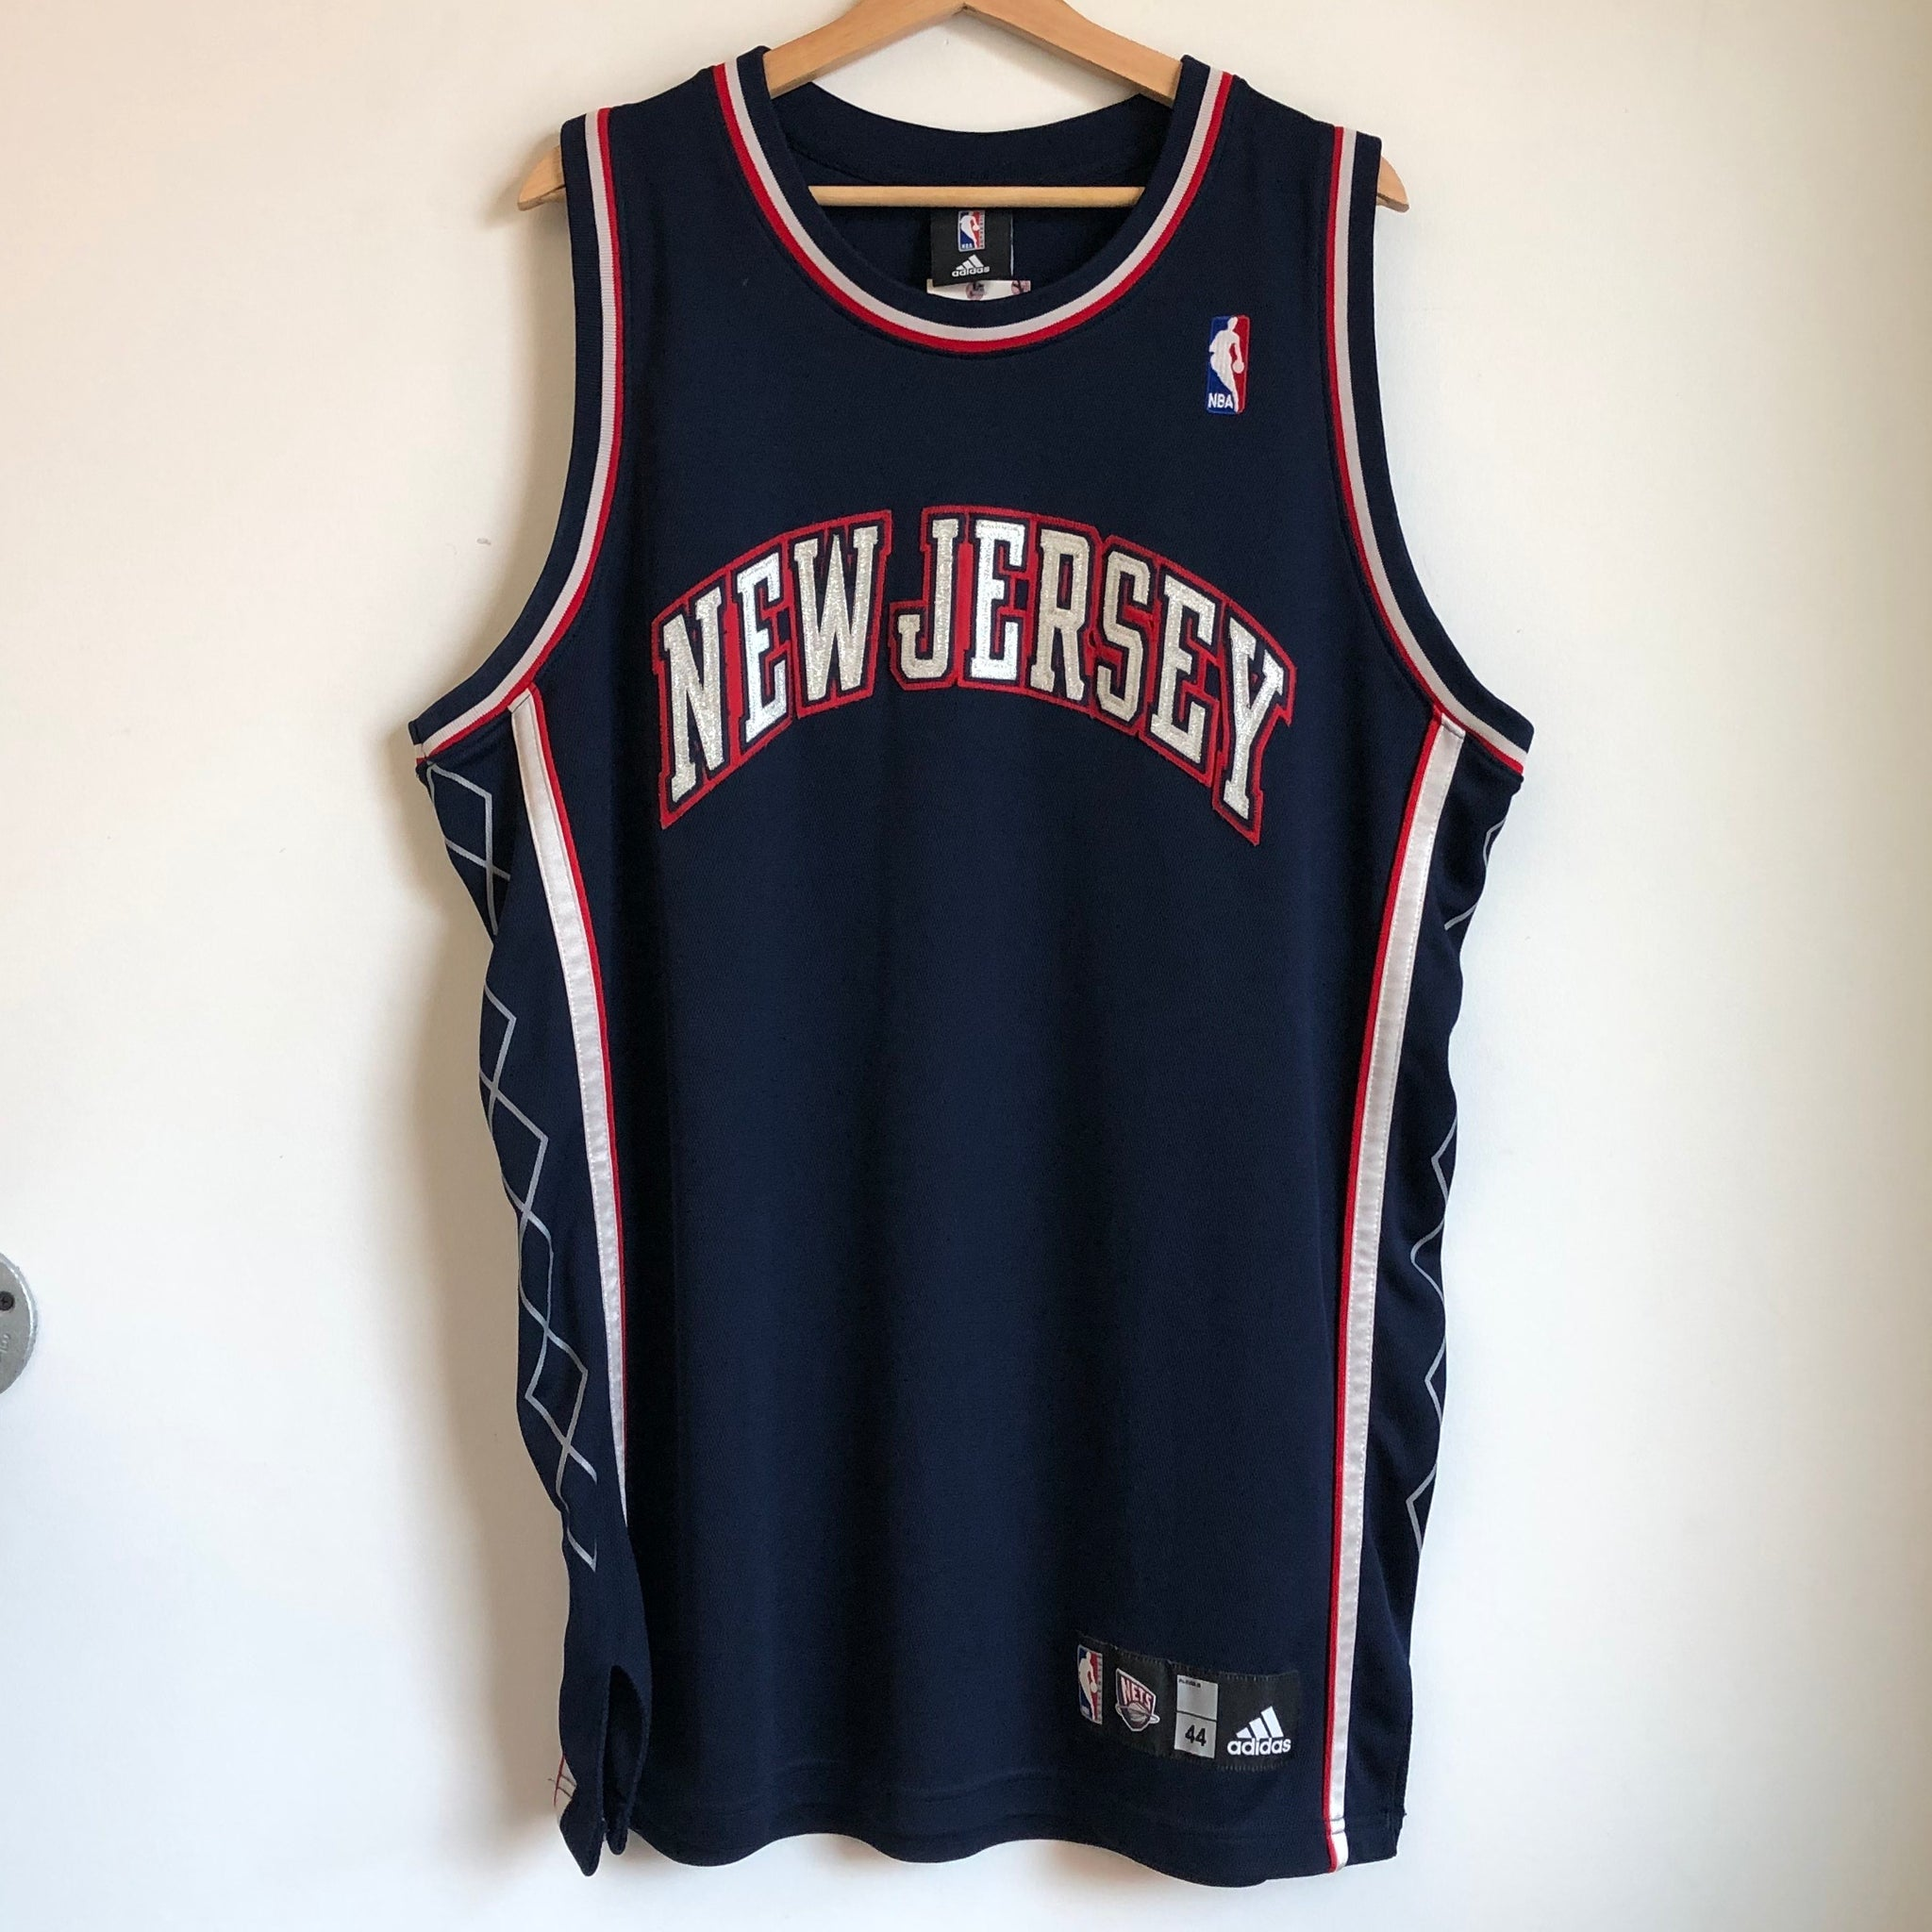 Adidas New Jersey Nets Authentic Navy Blank Basketball Jersey